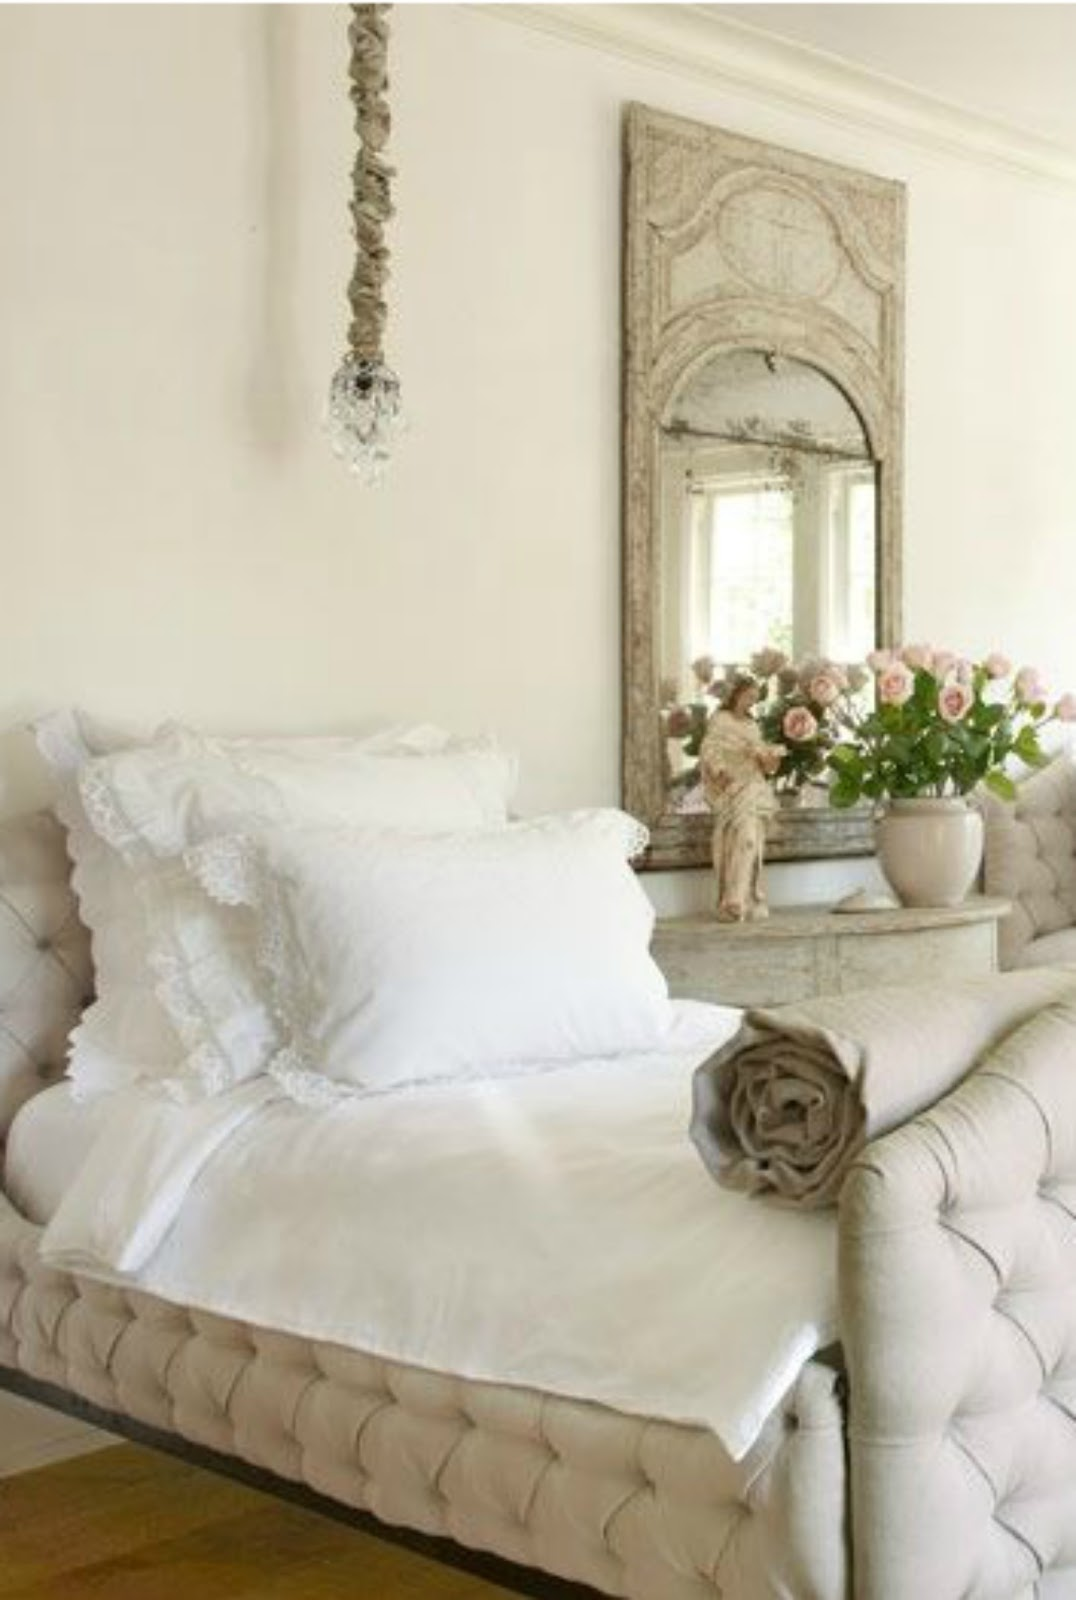 French Country bedroom decor with tufted linen upholstered beds. Pamela Pierce's gorgeous home with sophisticated French Country decor and European farmhouse charm on Hello Lovely Studio